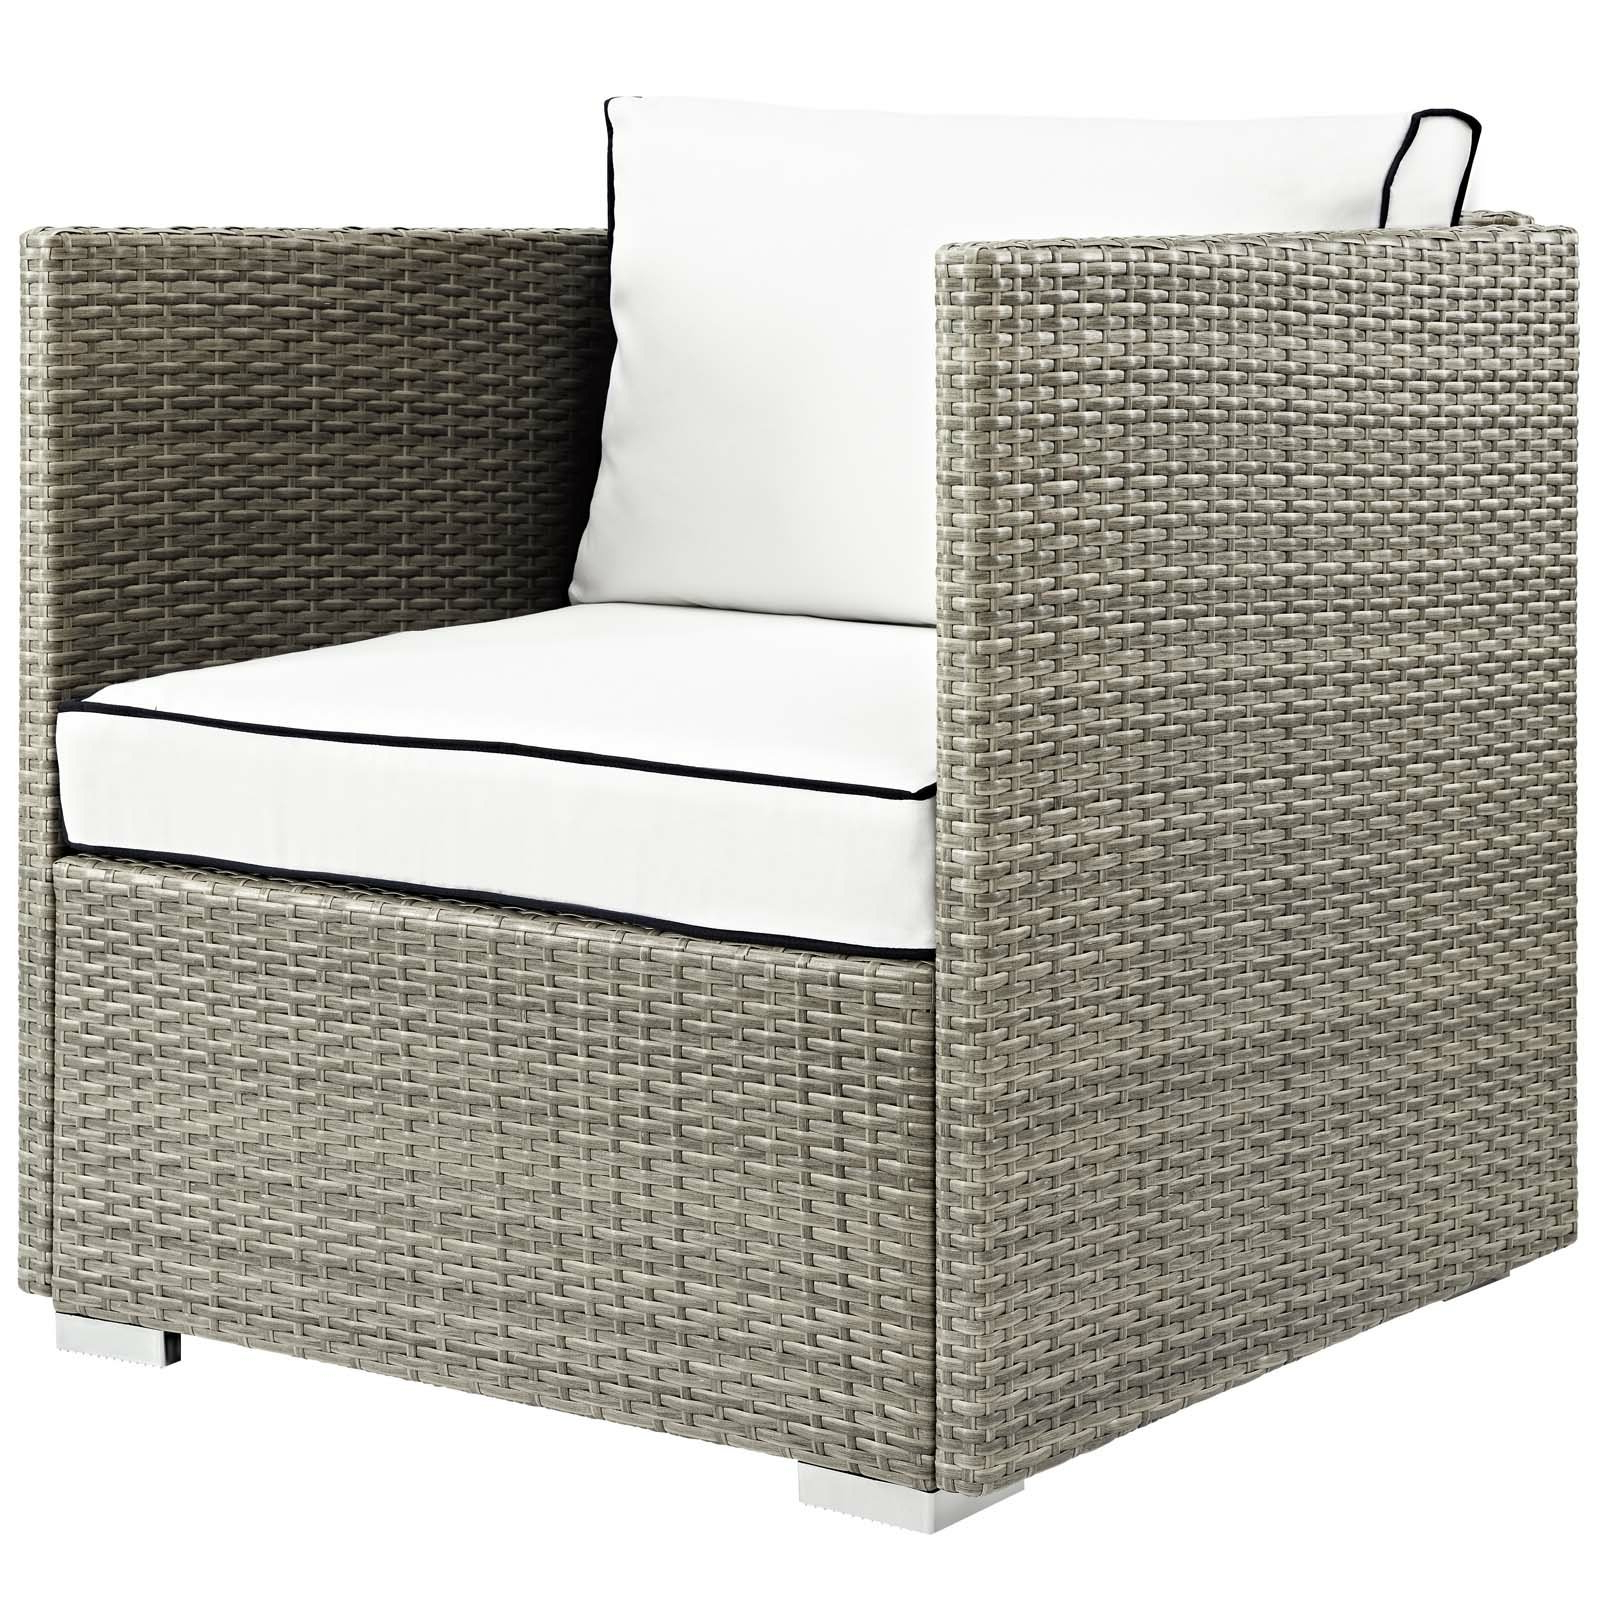 Zeman Ultra Comfortable Upholstered Anodized Aluminum Loveseats With Cushion Throughout Well Liked Heinrich Outdoor Patio Chair With Cushion (View 21 of 25)